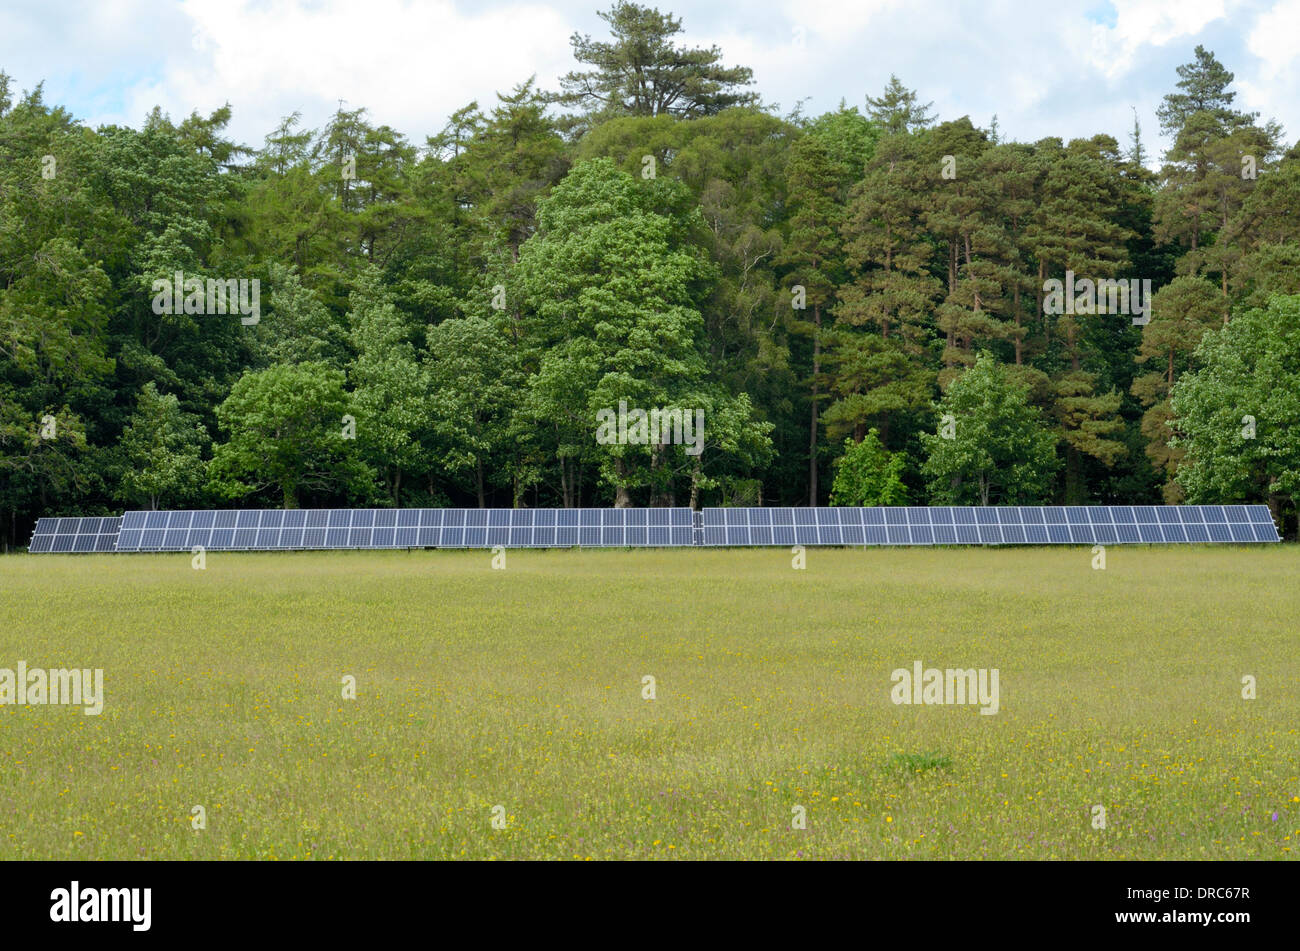 Solar Panels in a Meadow - Stock Image